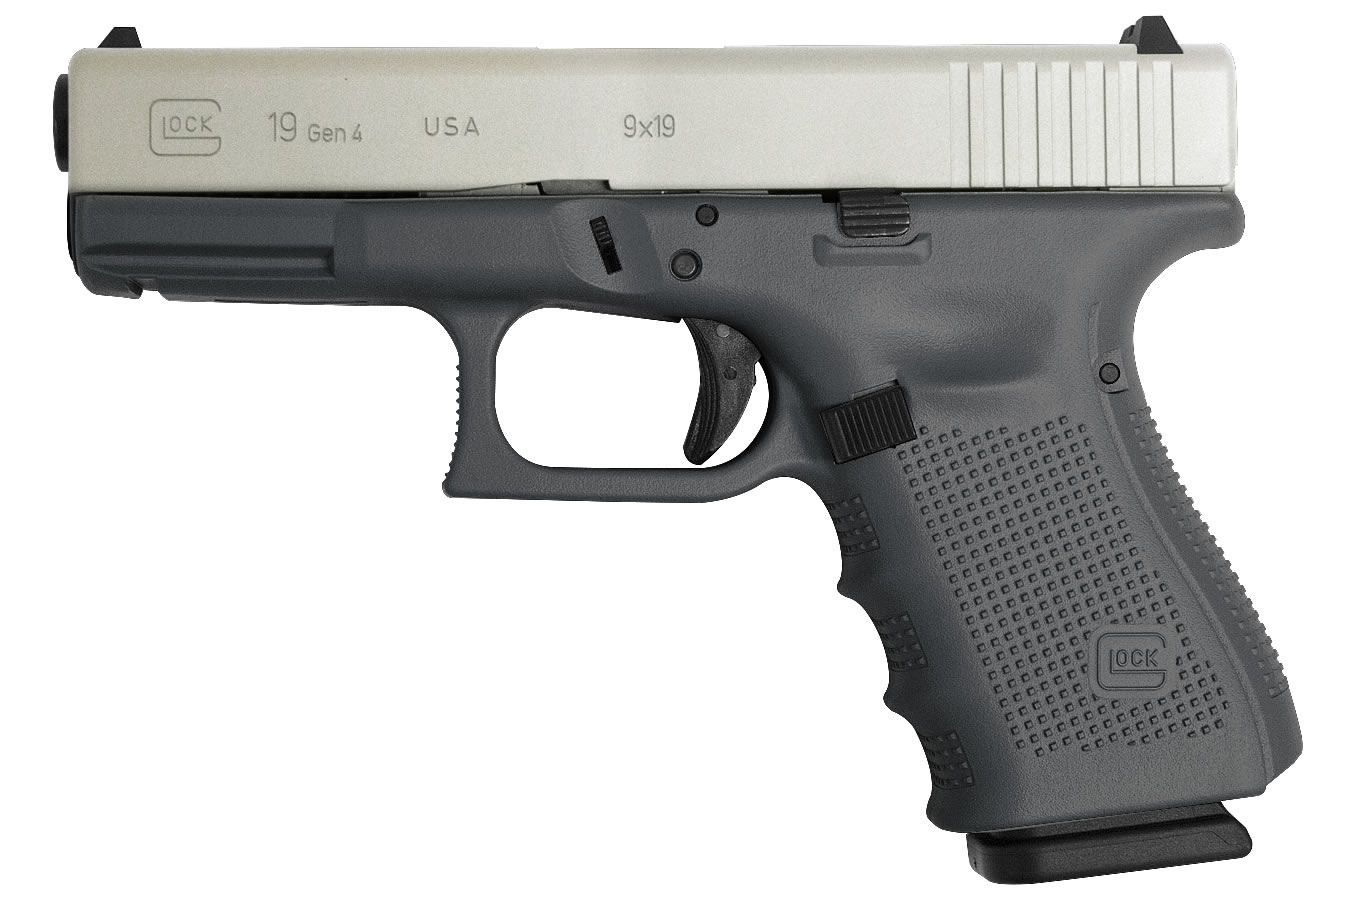 Glock 19 Gen4 9mm 15-Round Pistol with Battleship Gray Cerakote ...